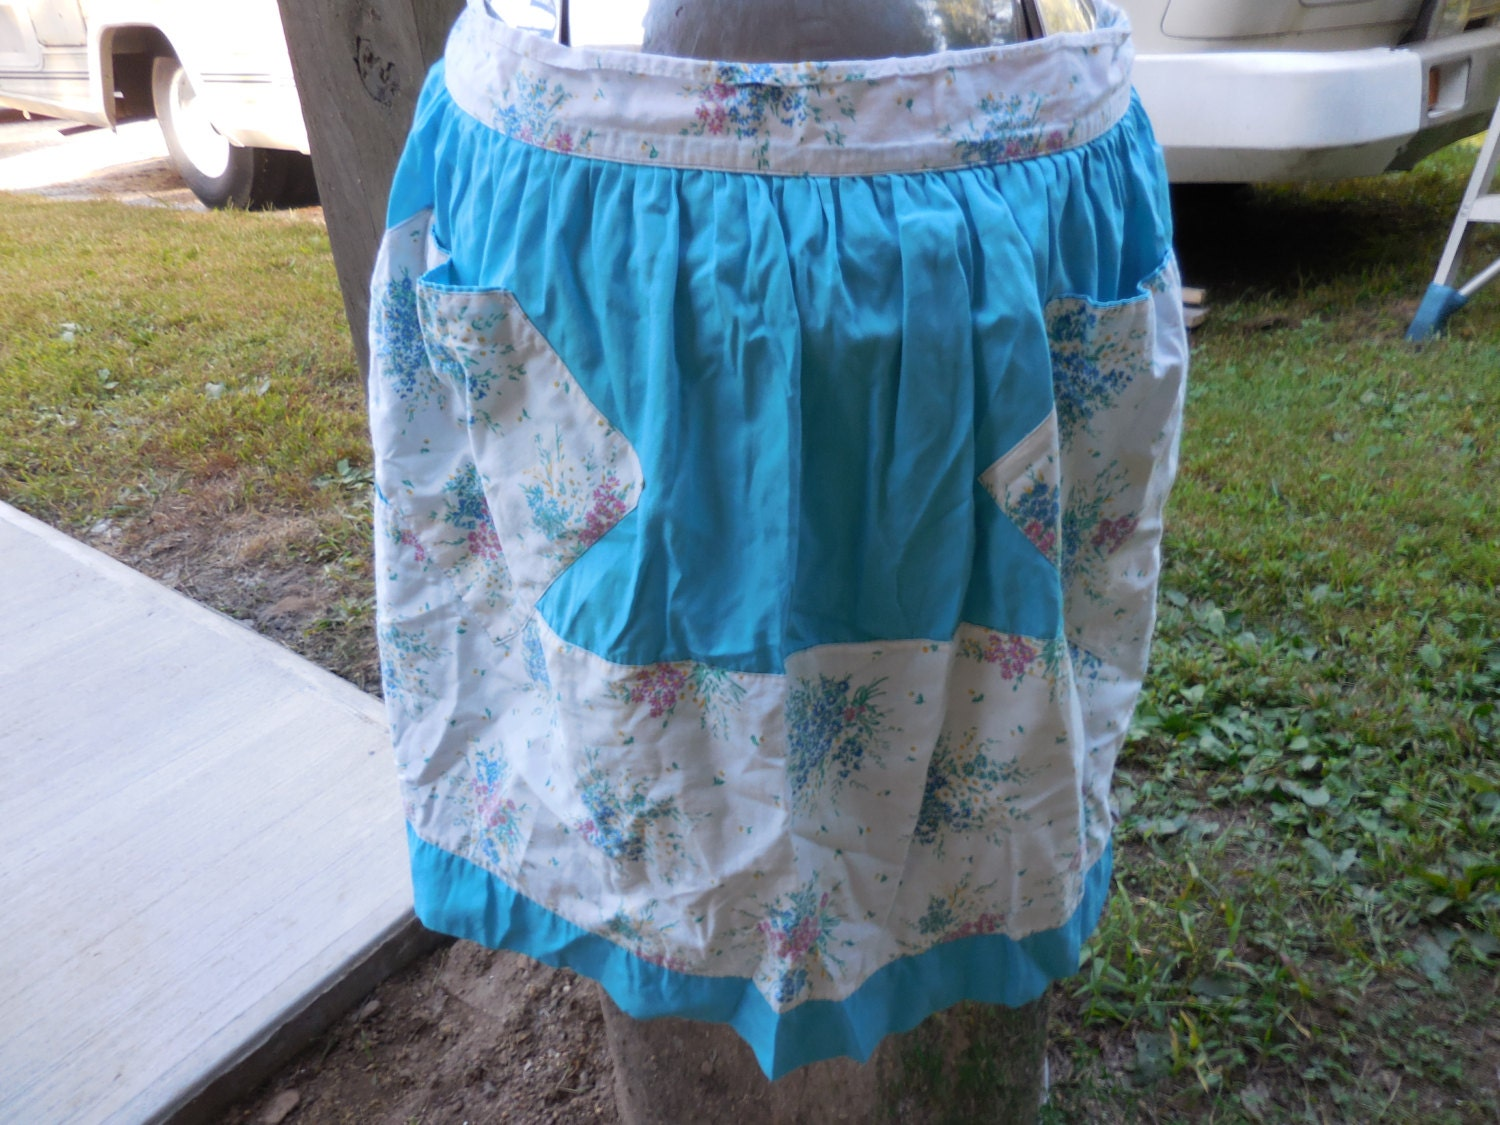 Vintage Aprons, Retro Aprons, Old Fashioned Aprons & Patterns Vintage 1950S To 1960S Teal Blue  White Half Apron With Tie Floral Design PinkBlueYellowGreen $14.99 AT vintagedancer.com